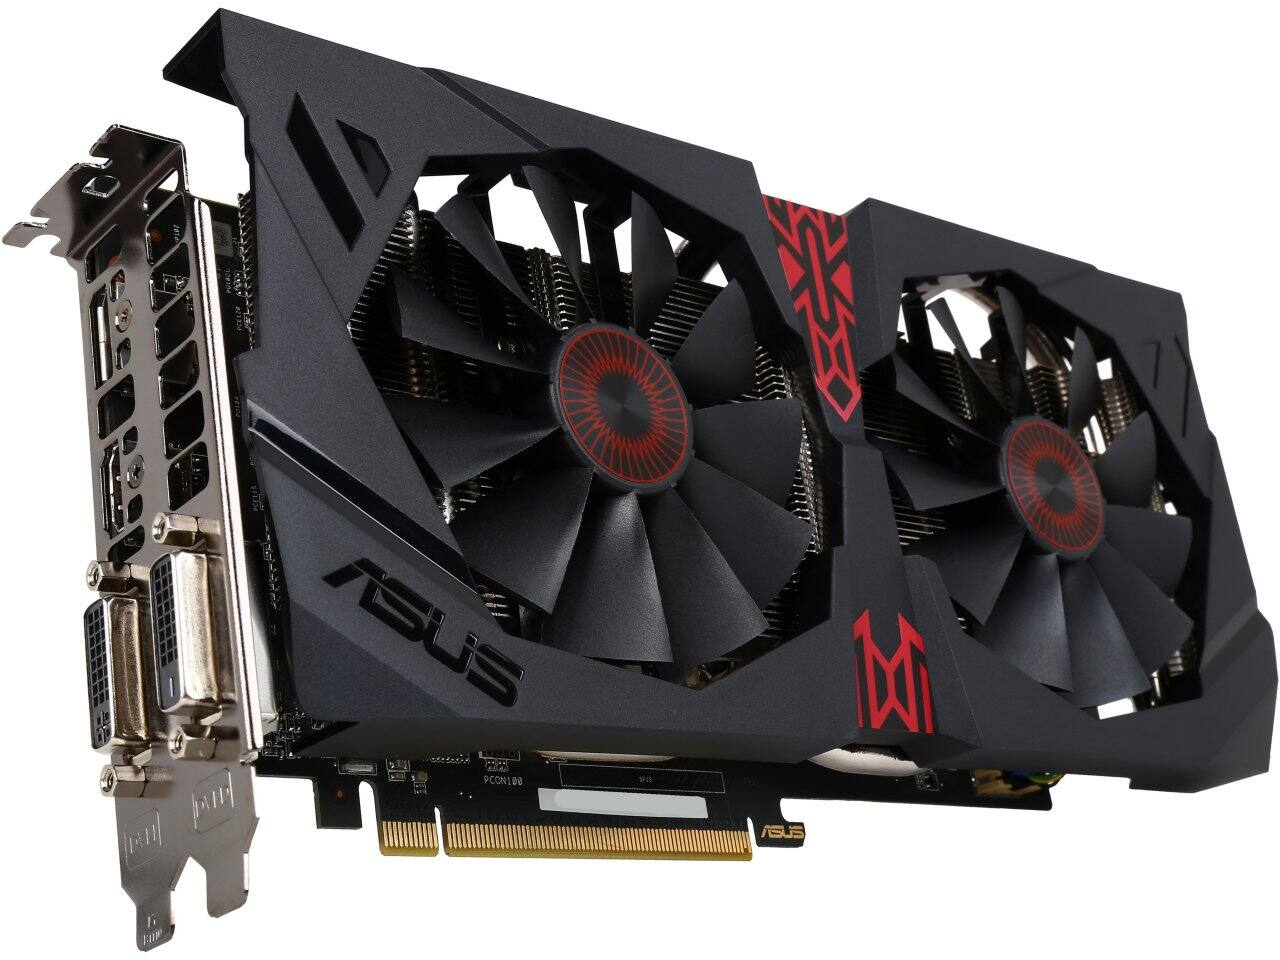 Asus Radeon R9 380 4 GB 256-Bit GDDR5 PCI-E 3.0 Video Card for $144.99 AR or MSI Radeon R7 250 2 GB 128-Bit DDR3 PCI-E 3.0 Video Card for $44.99 AR + Free Shipping @ Newegg.com